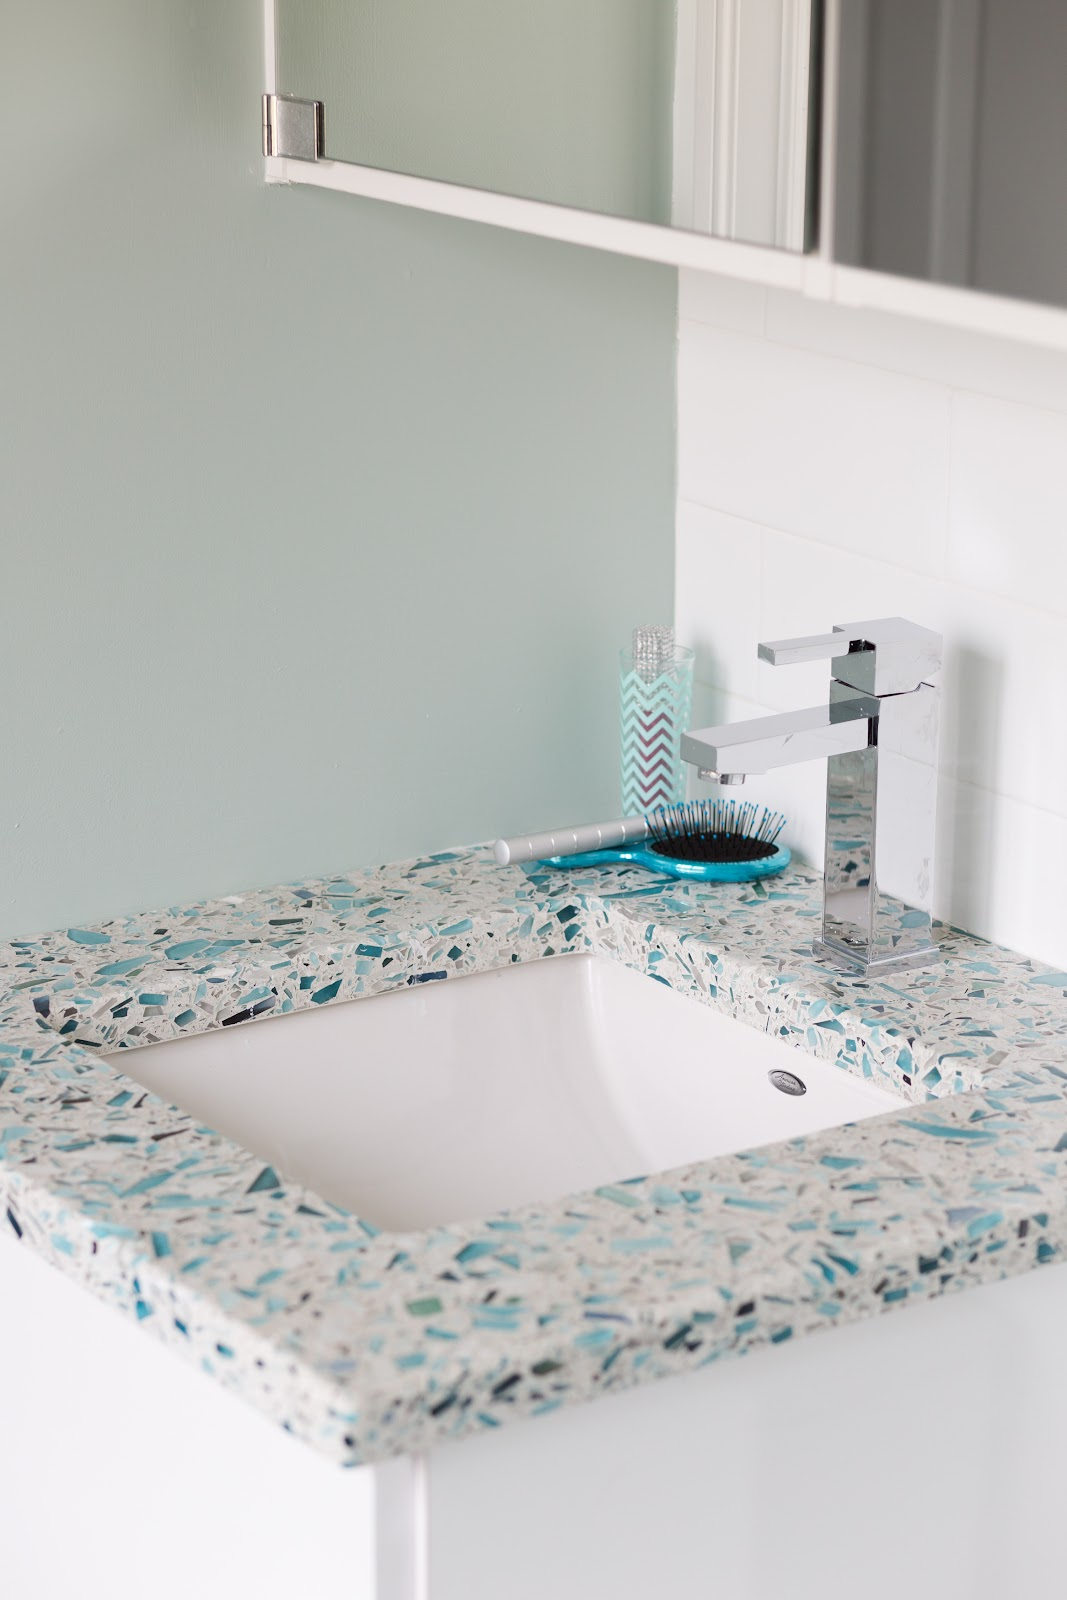 Small Space Big Style 8 Tiny Bathrooms That Wow With Color And Light From Recycled Glass